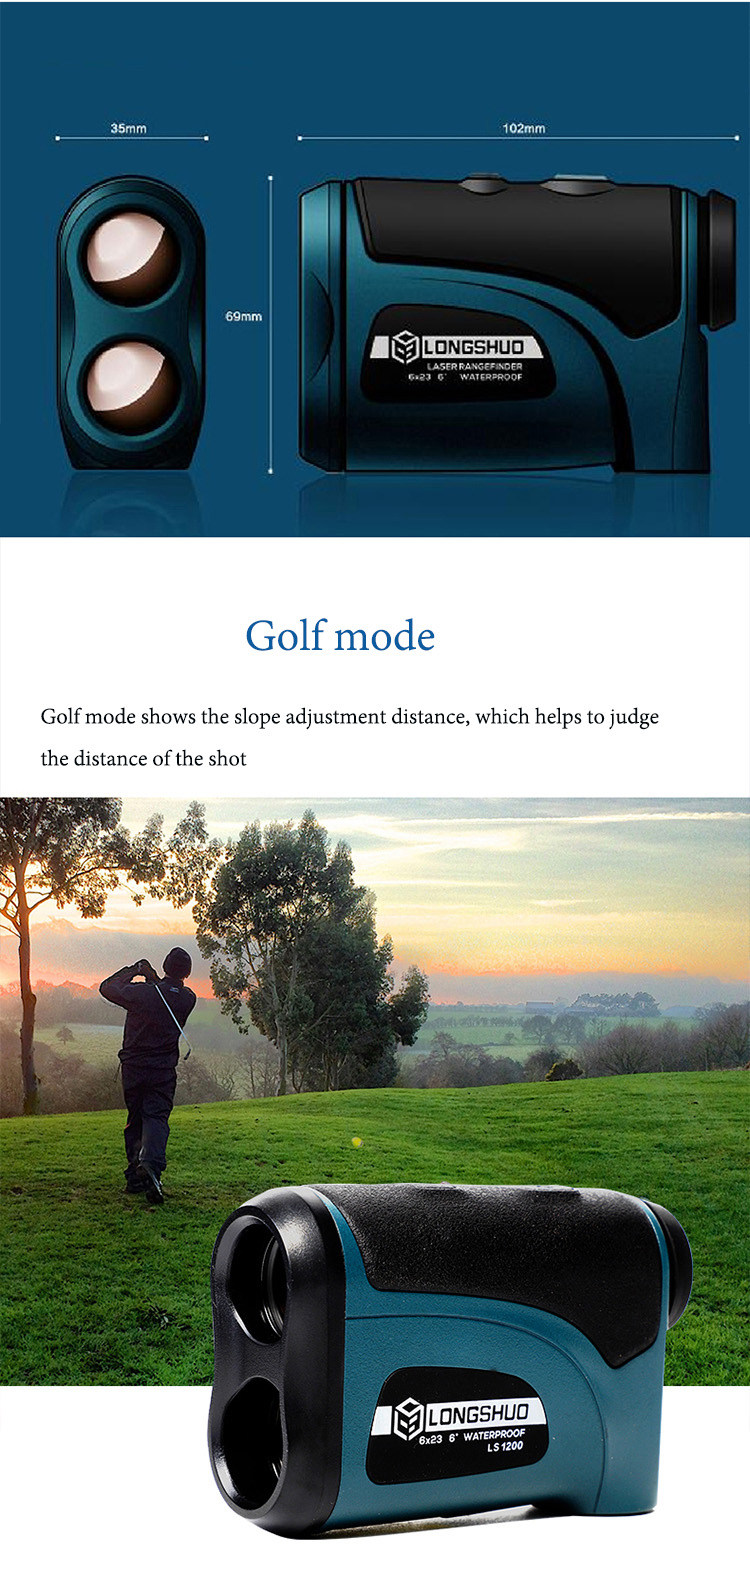 Laser 800m-1200m Rangefinder with LCD Display and Golf Slope Adjustment Mode for Sports 7